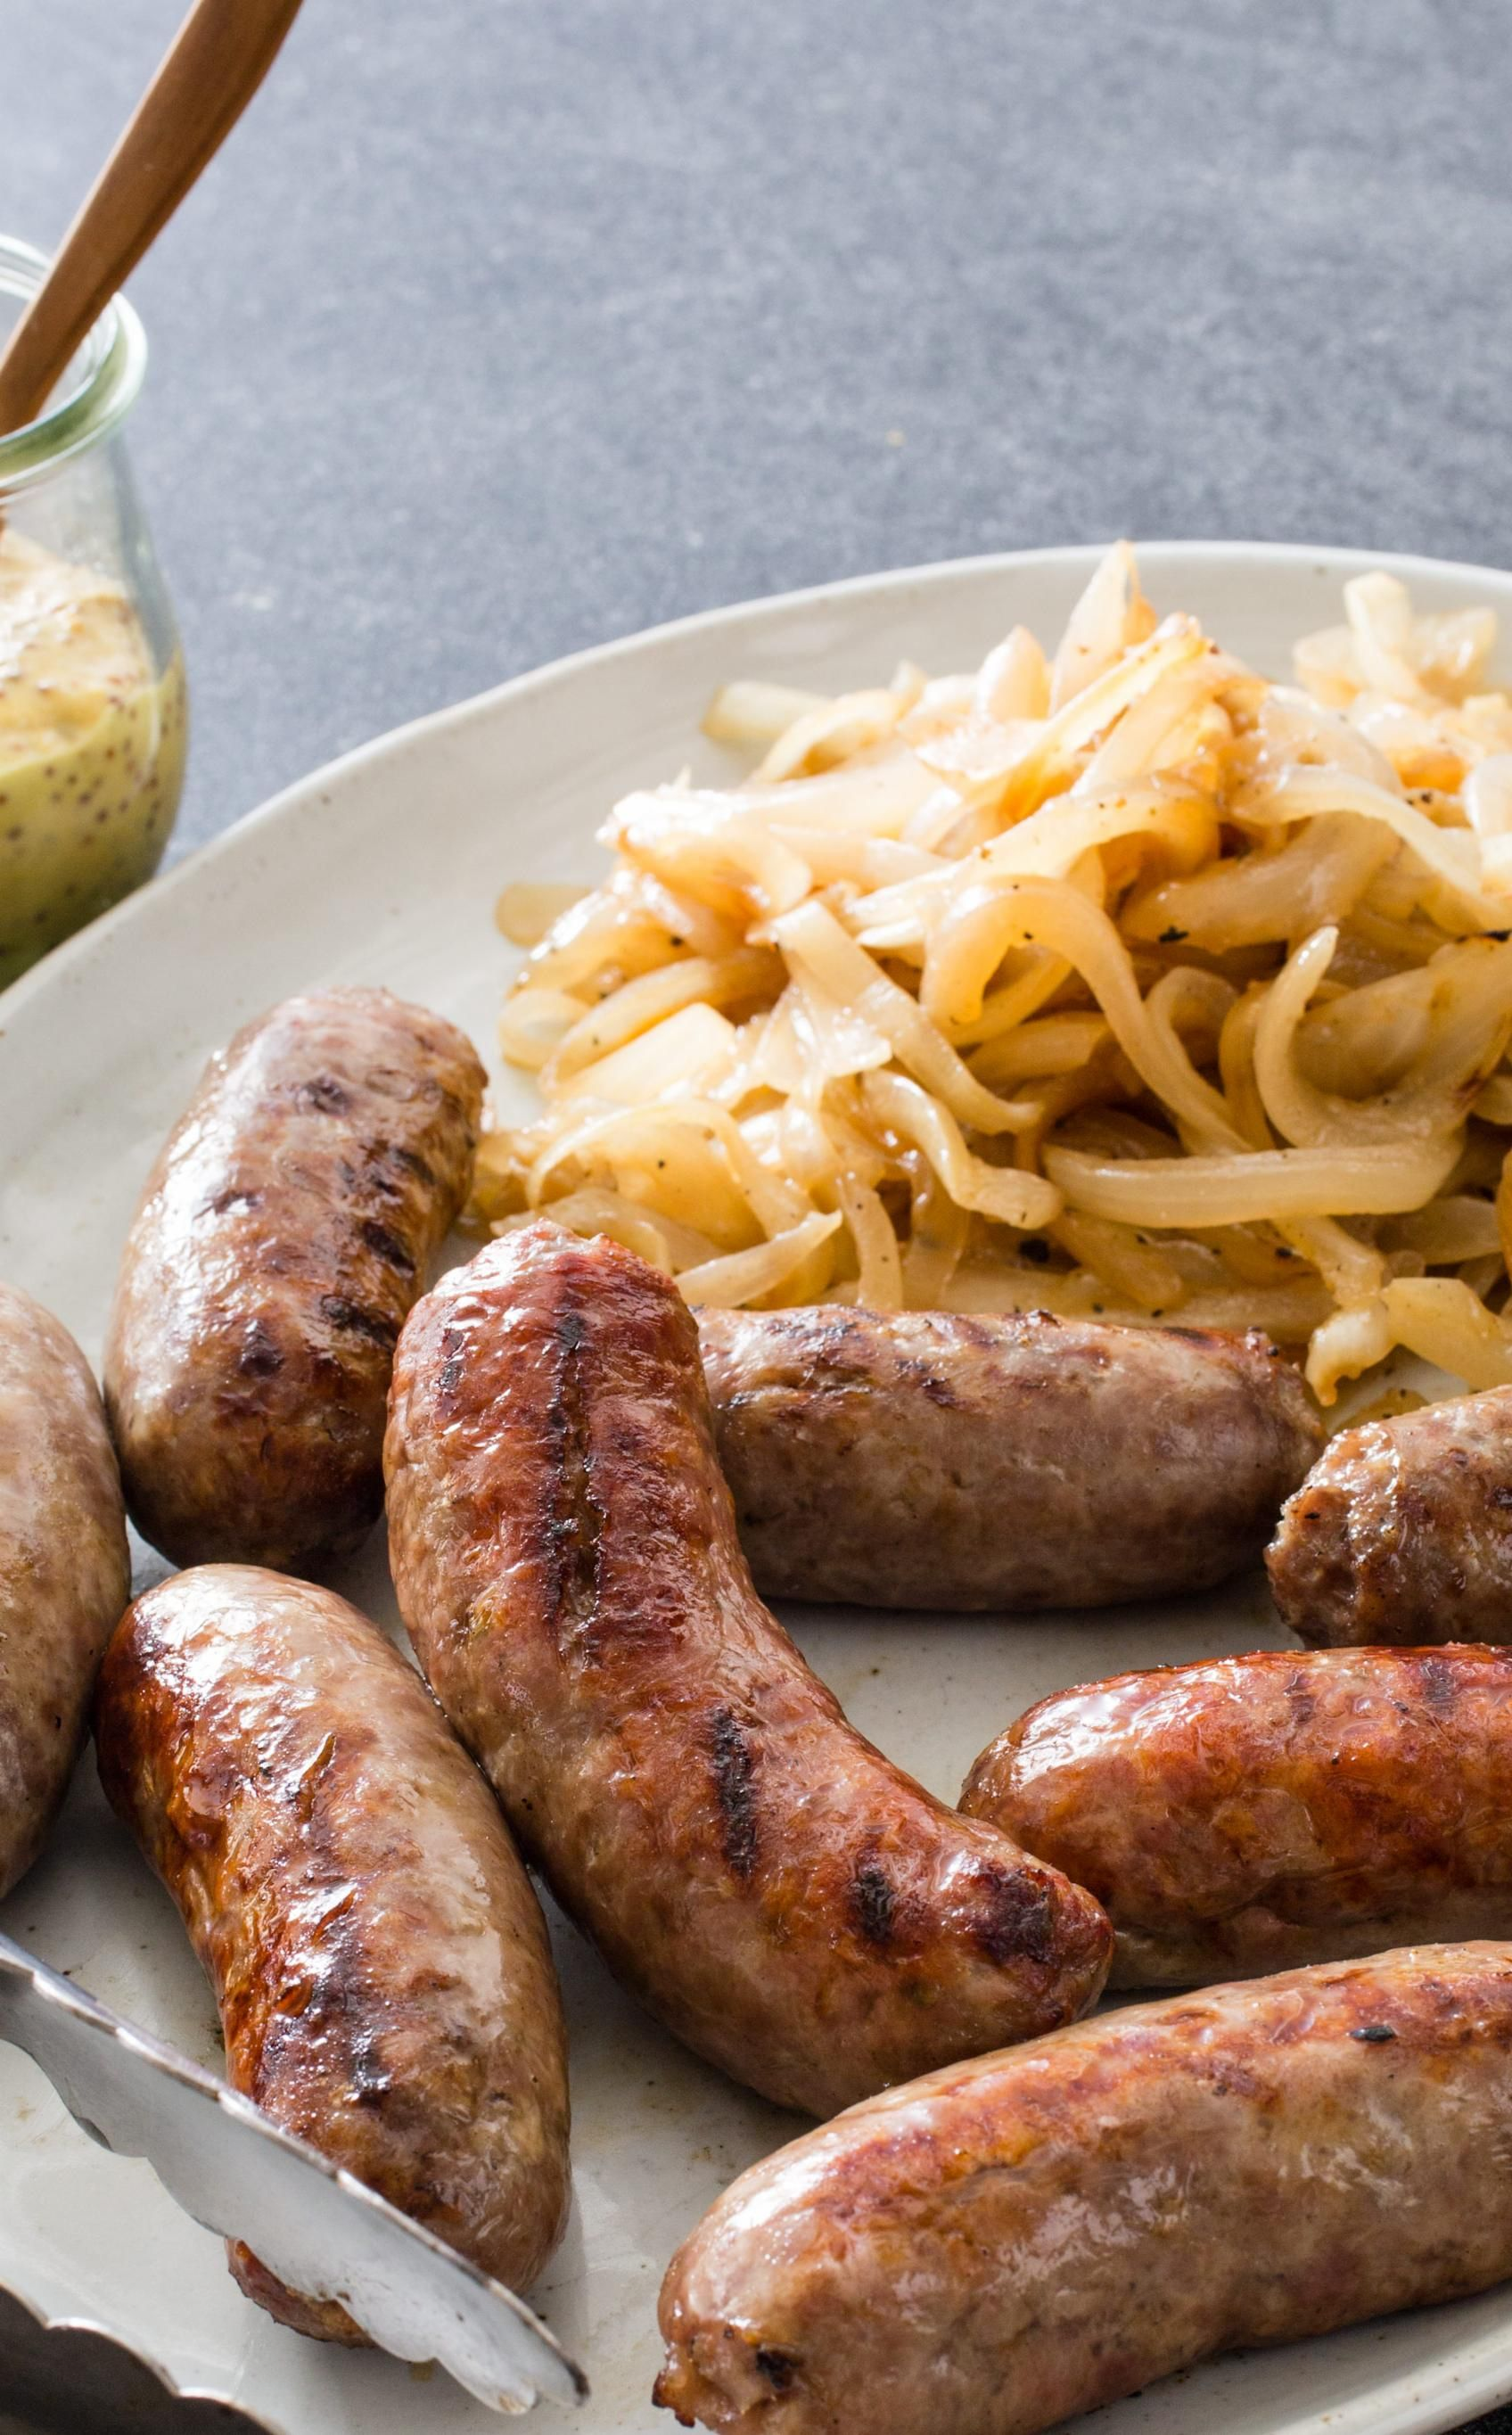 Charcoalgrilled sausages and onions we wanted a